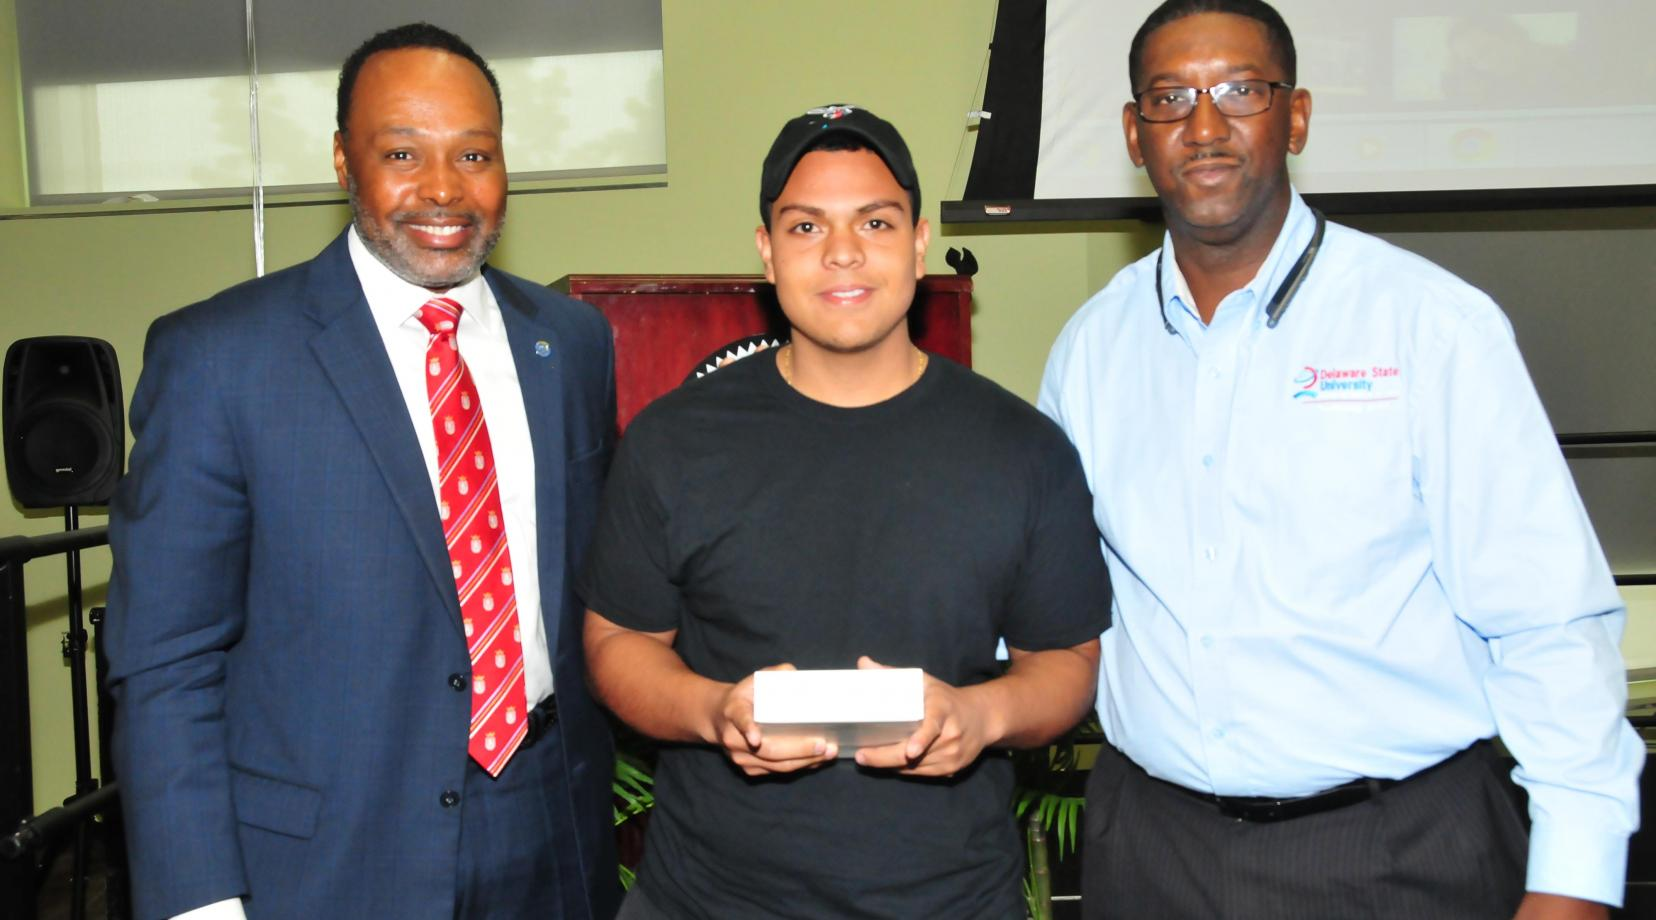 Kevin Coque Alarcon, a freshman mass communications major (center), won a digital drawing and took home an iPad Mini. Standing with him are keynote speaker James Collins (l) and DSU CIO Darrell McMillon.